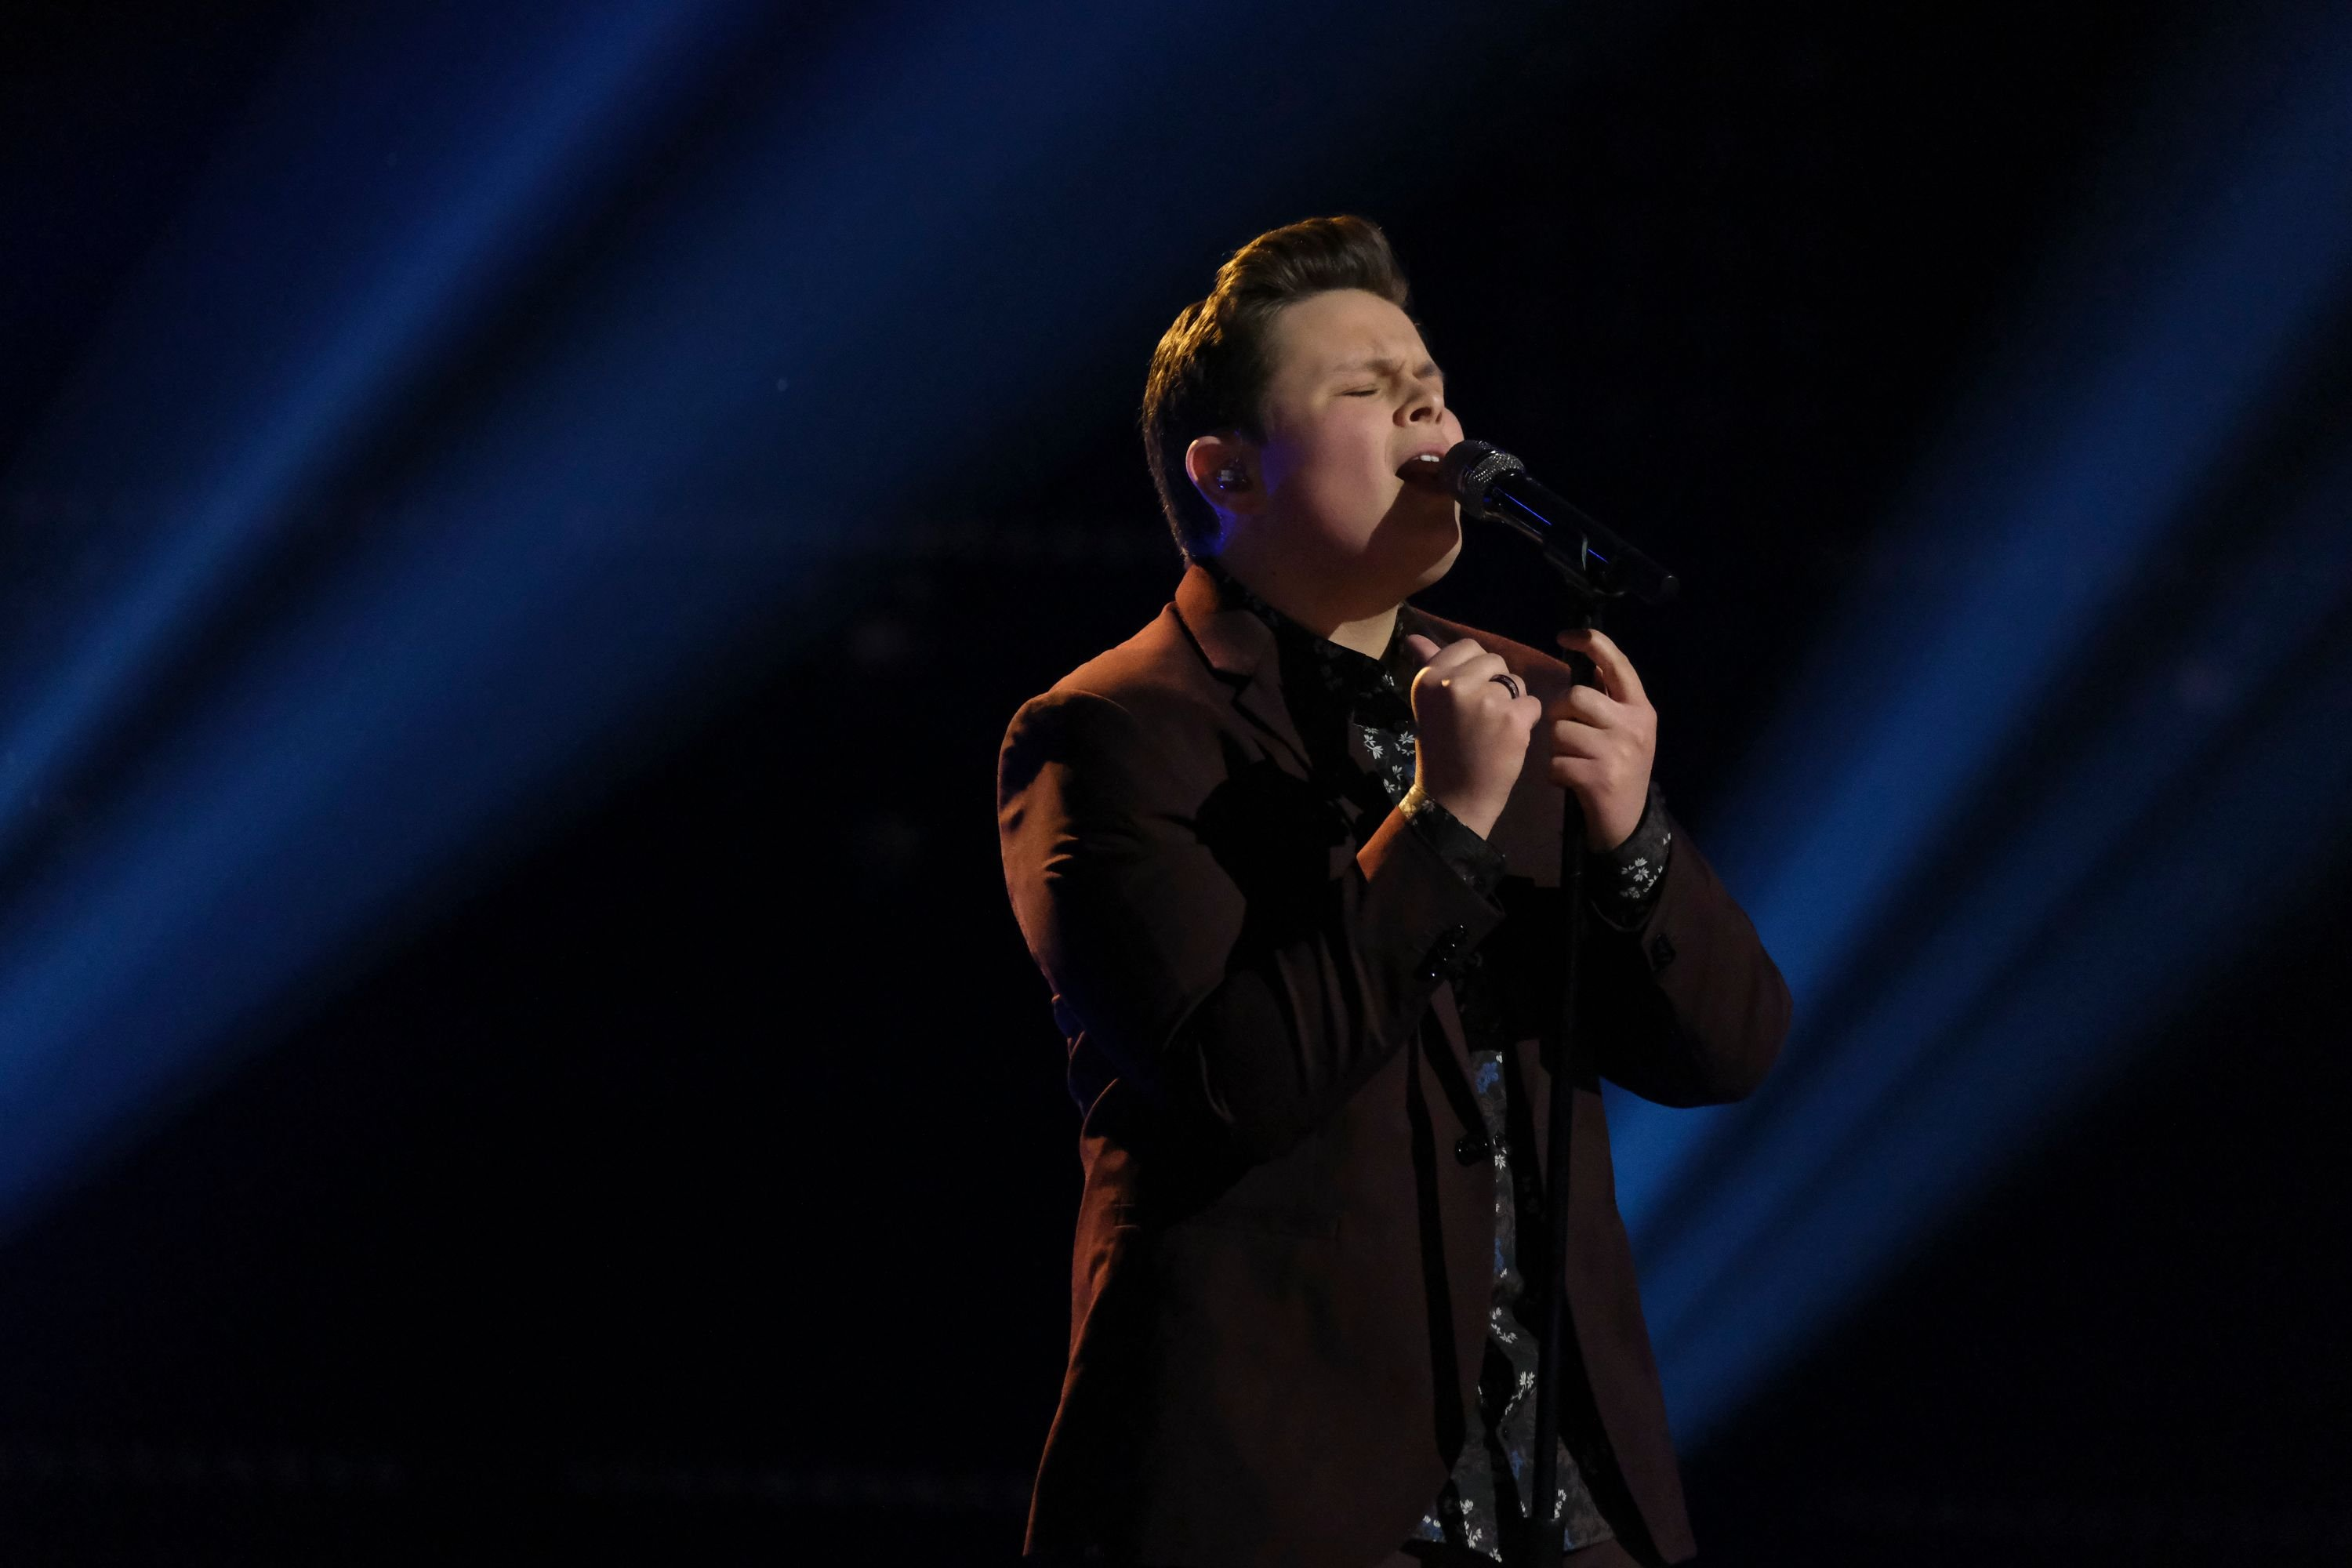 """Carter Rubin singing on season 19 of """"The Voice"""" Live Top 17 performances on November 30, 2020 